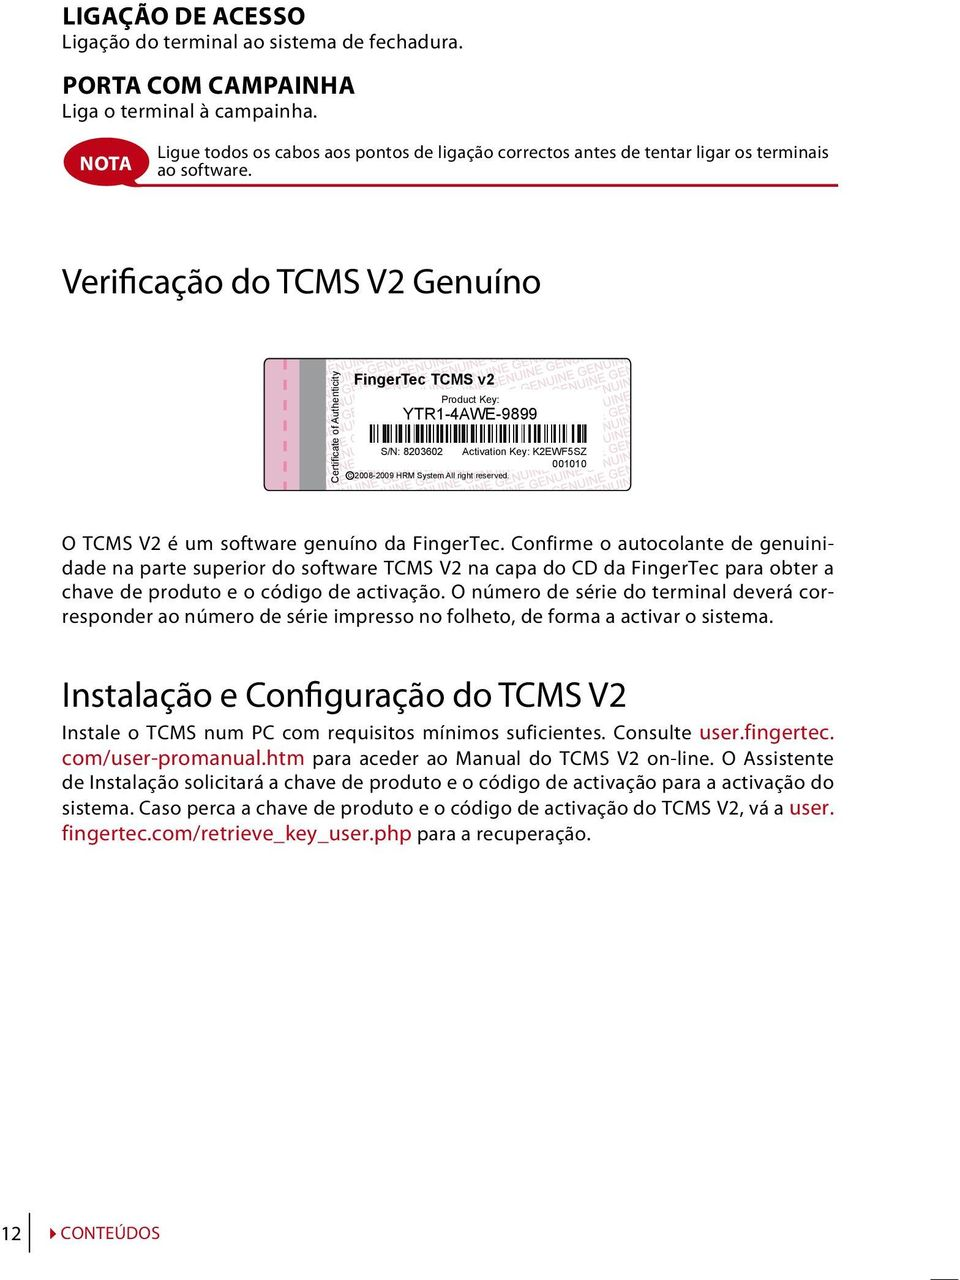 Verificação do TCMS V2 Genuíno Certificate of Authenticity c FingerTec TCMS v2 Product Key: YTR1-4AWE-9899 S/N: 8203602 Activation Key: K2EWF5SZ 001010 2008-2009 HRM System All right reserved.